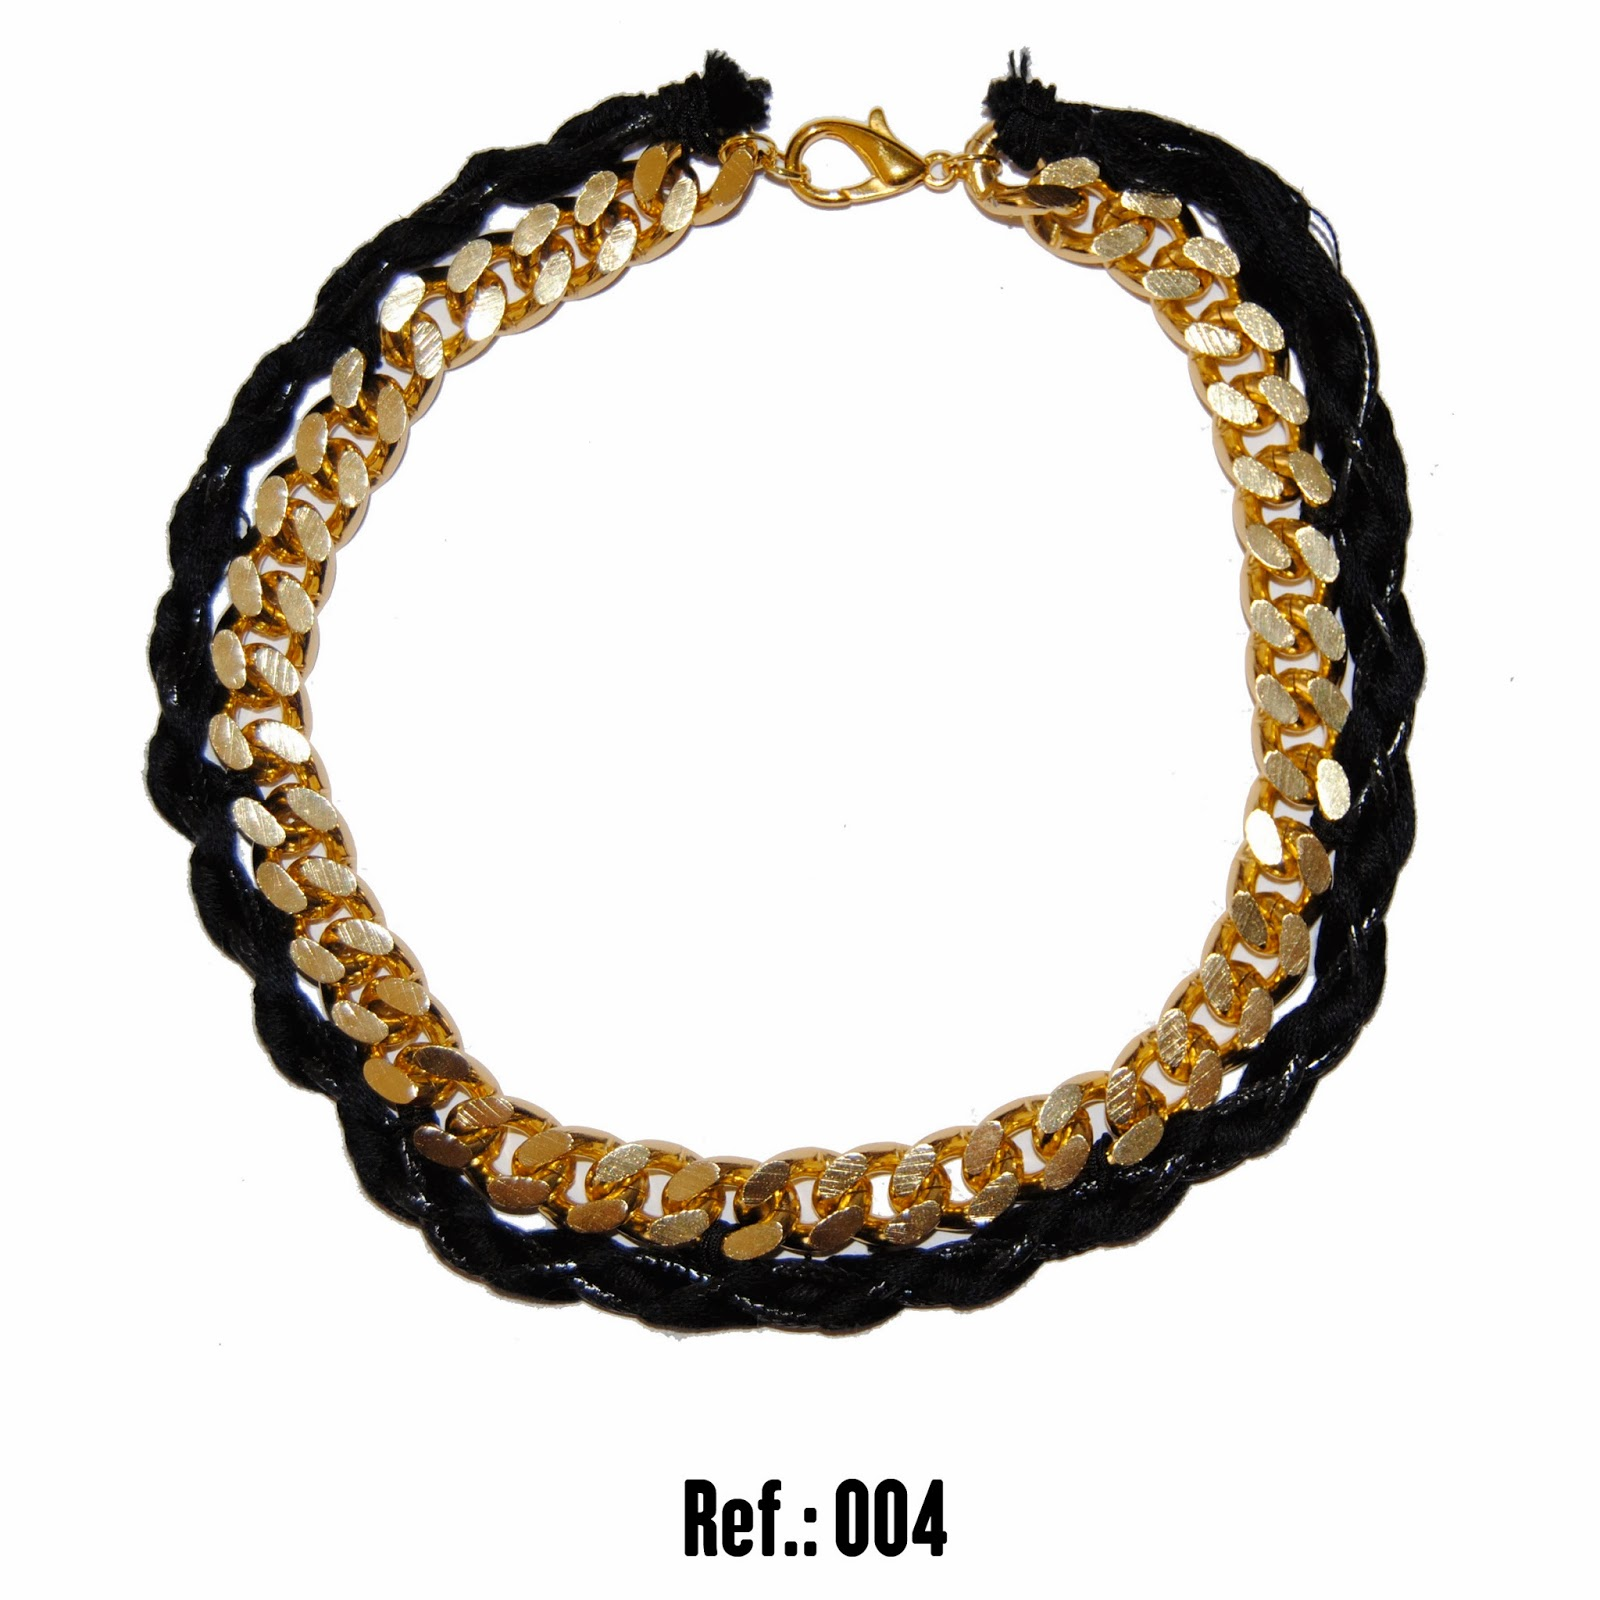 http://ataccesorios.blogspot.com.es/search?updated-max=2013-03-23T15:46:00%2B01:00&max-results=5&start=35&by-date=false